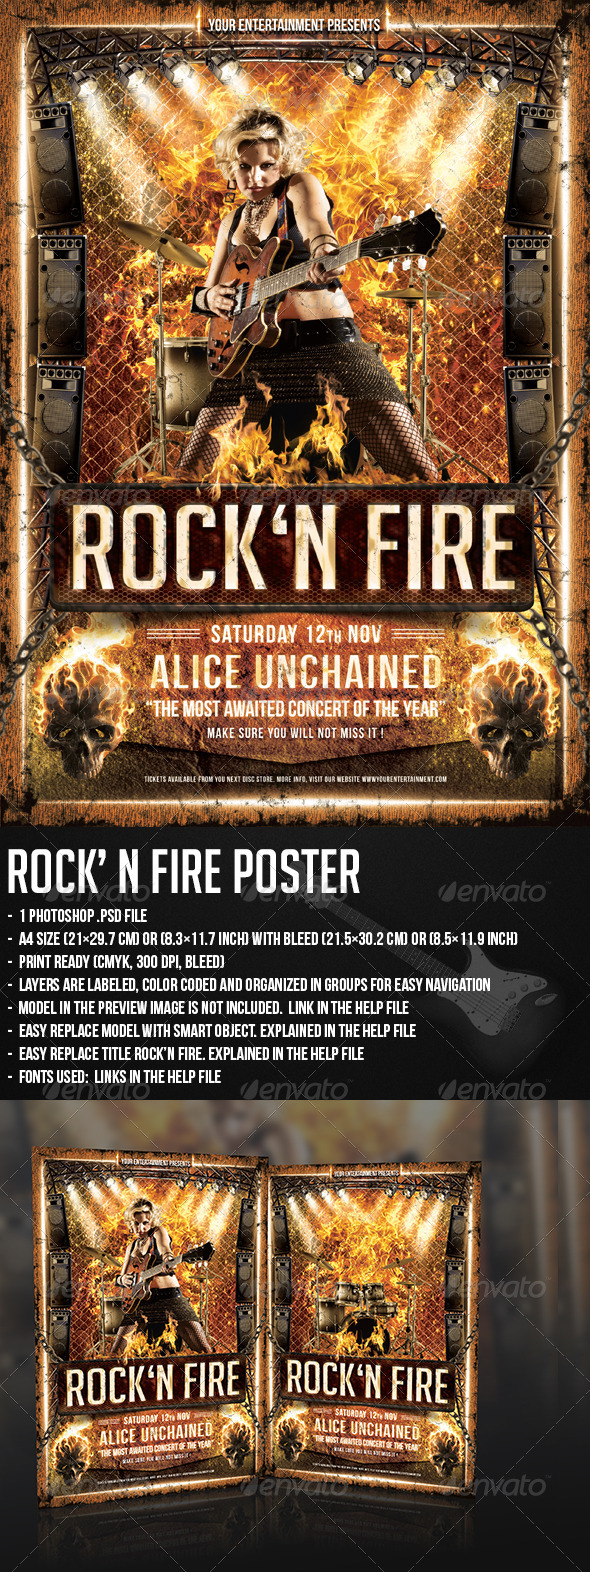 Rock' N Fire Live Poster - Concerts Events